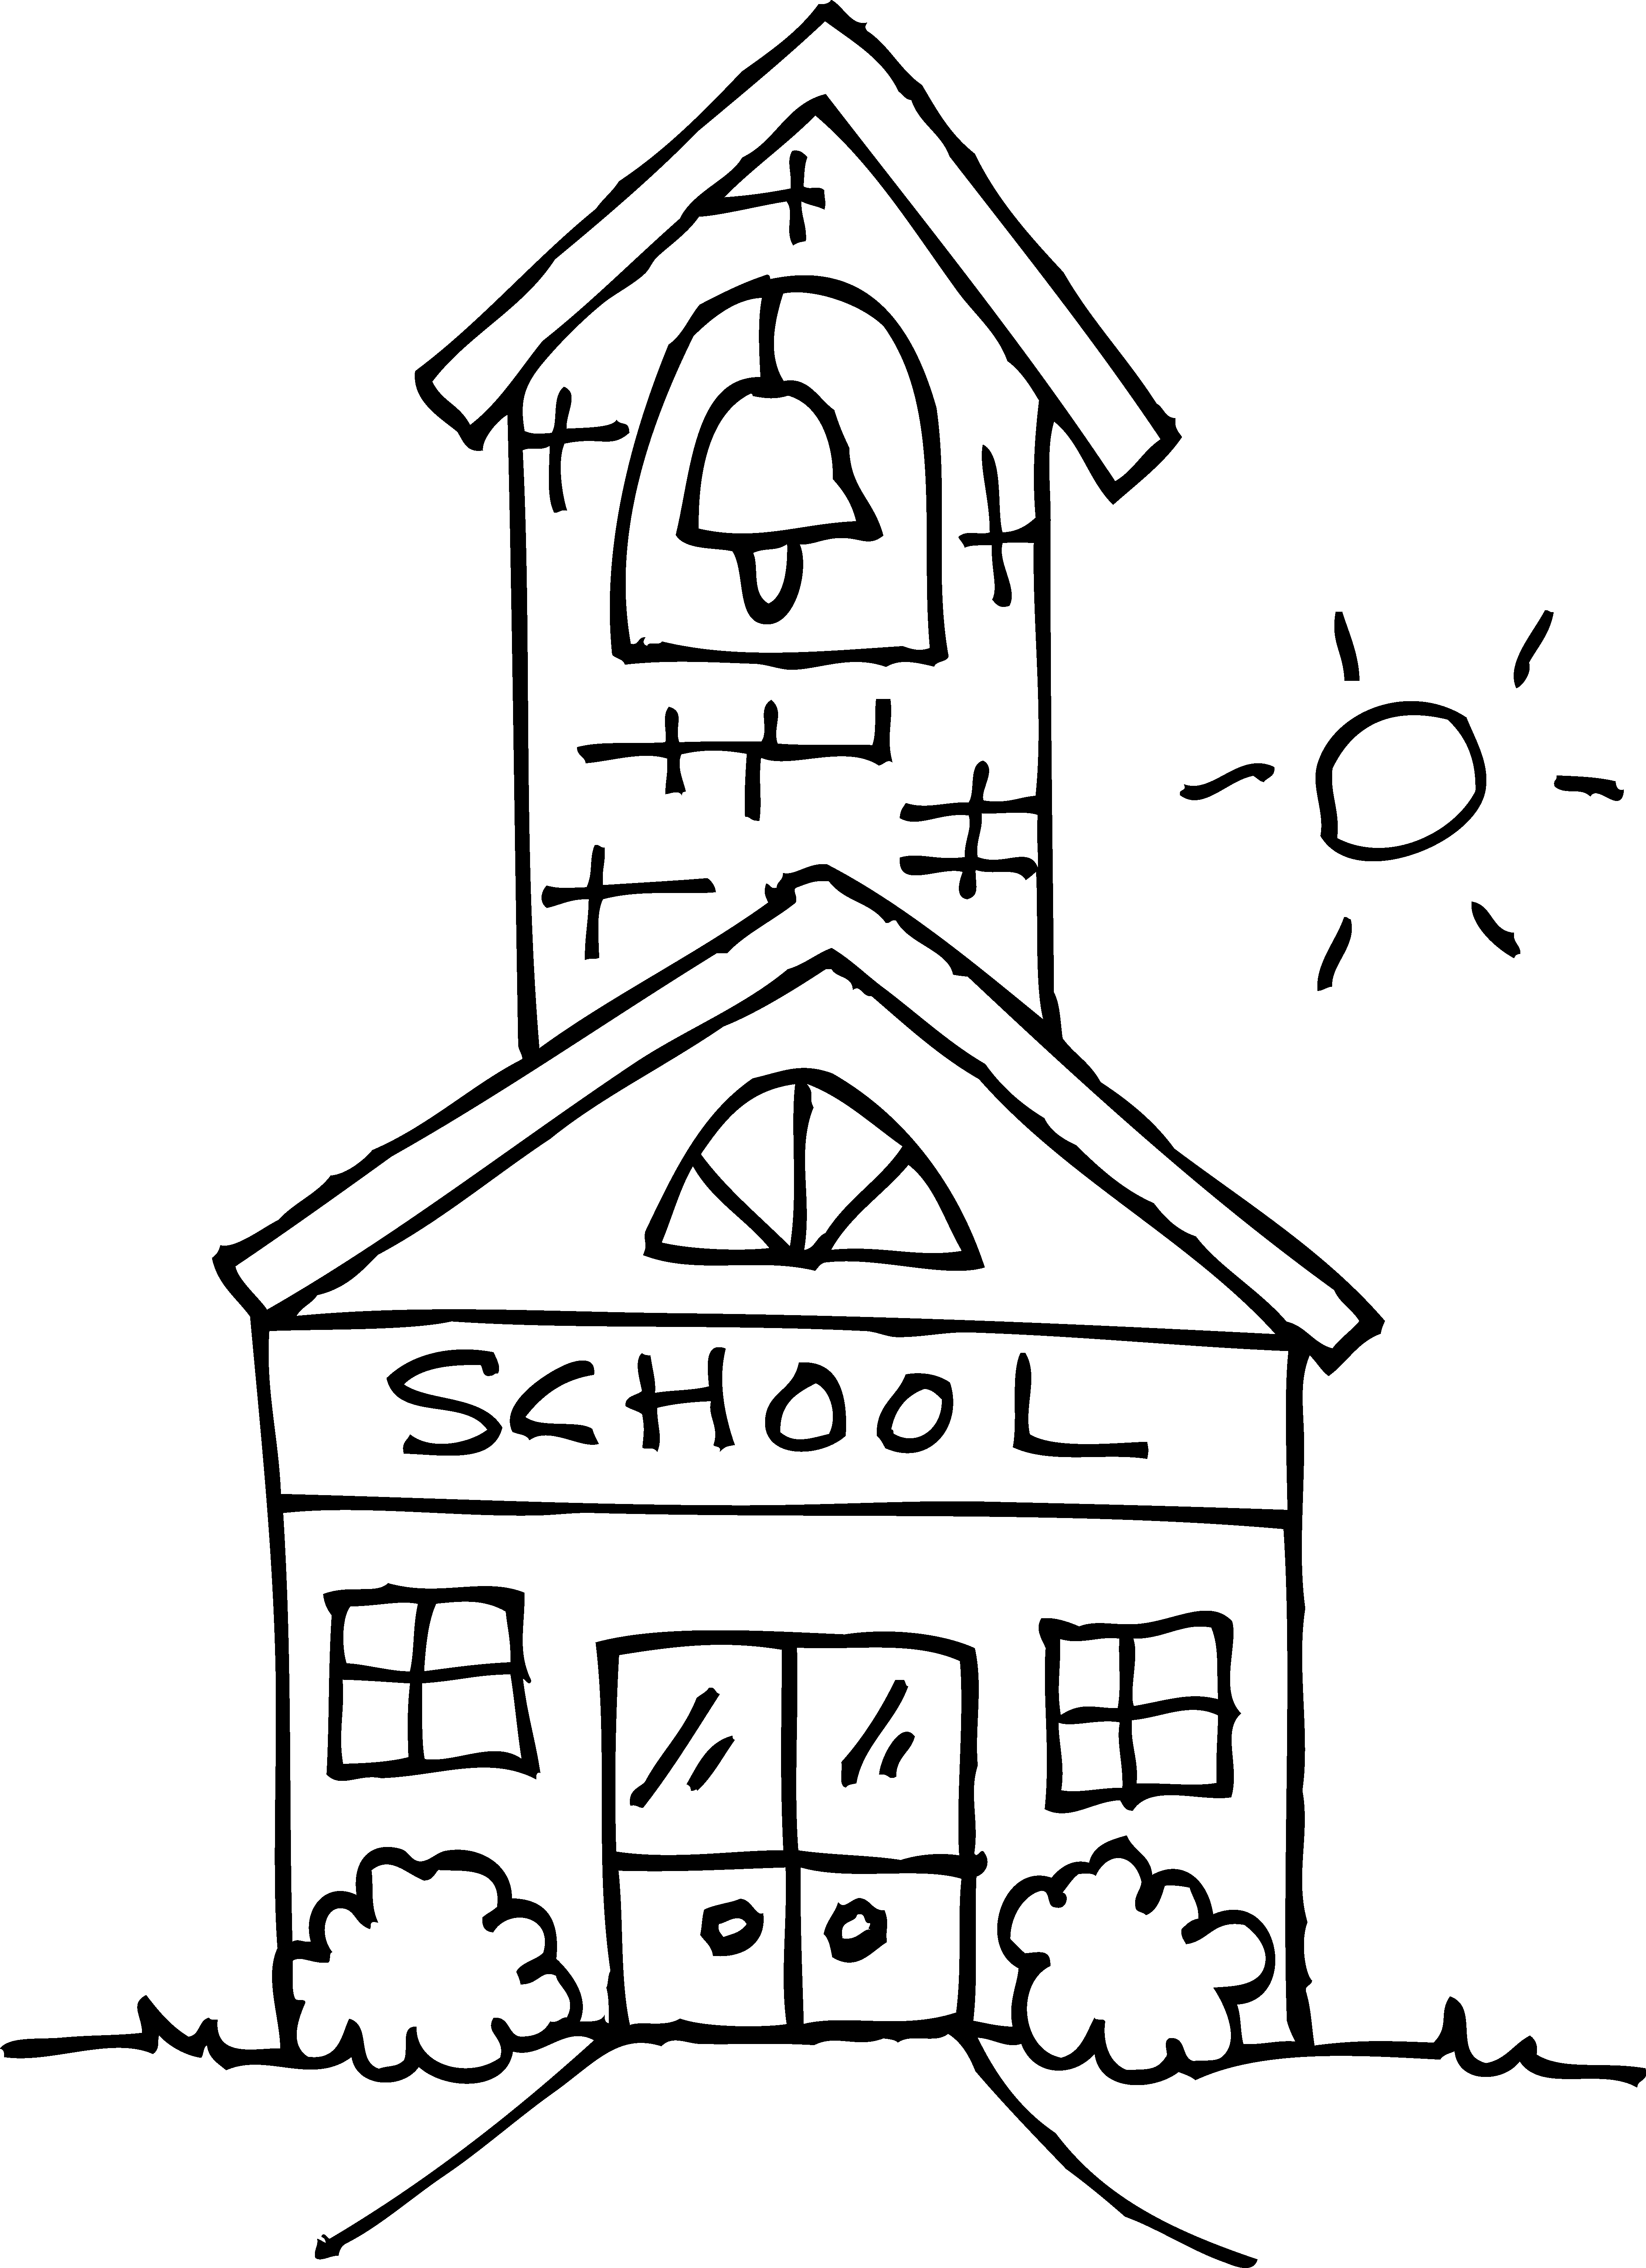 School House Coloring Page 16 with School House Coloring Page Collection Of School Coloring Pages with 35 Coloring Page A School Small School Collection